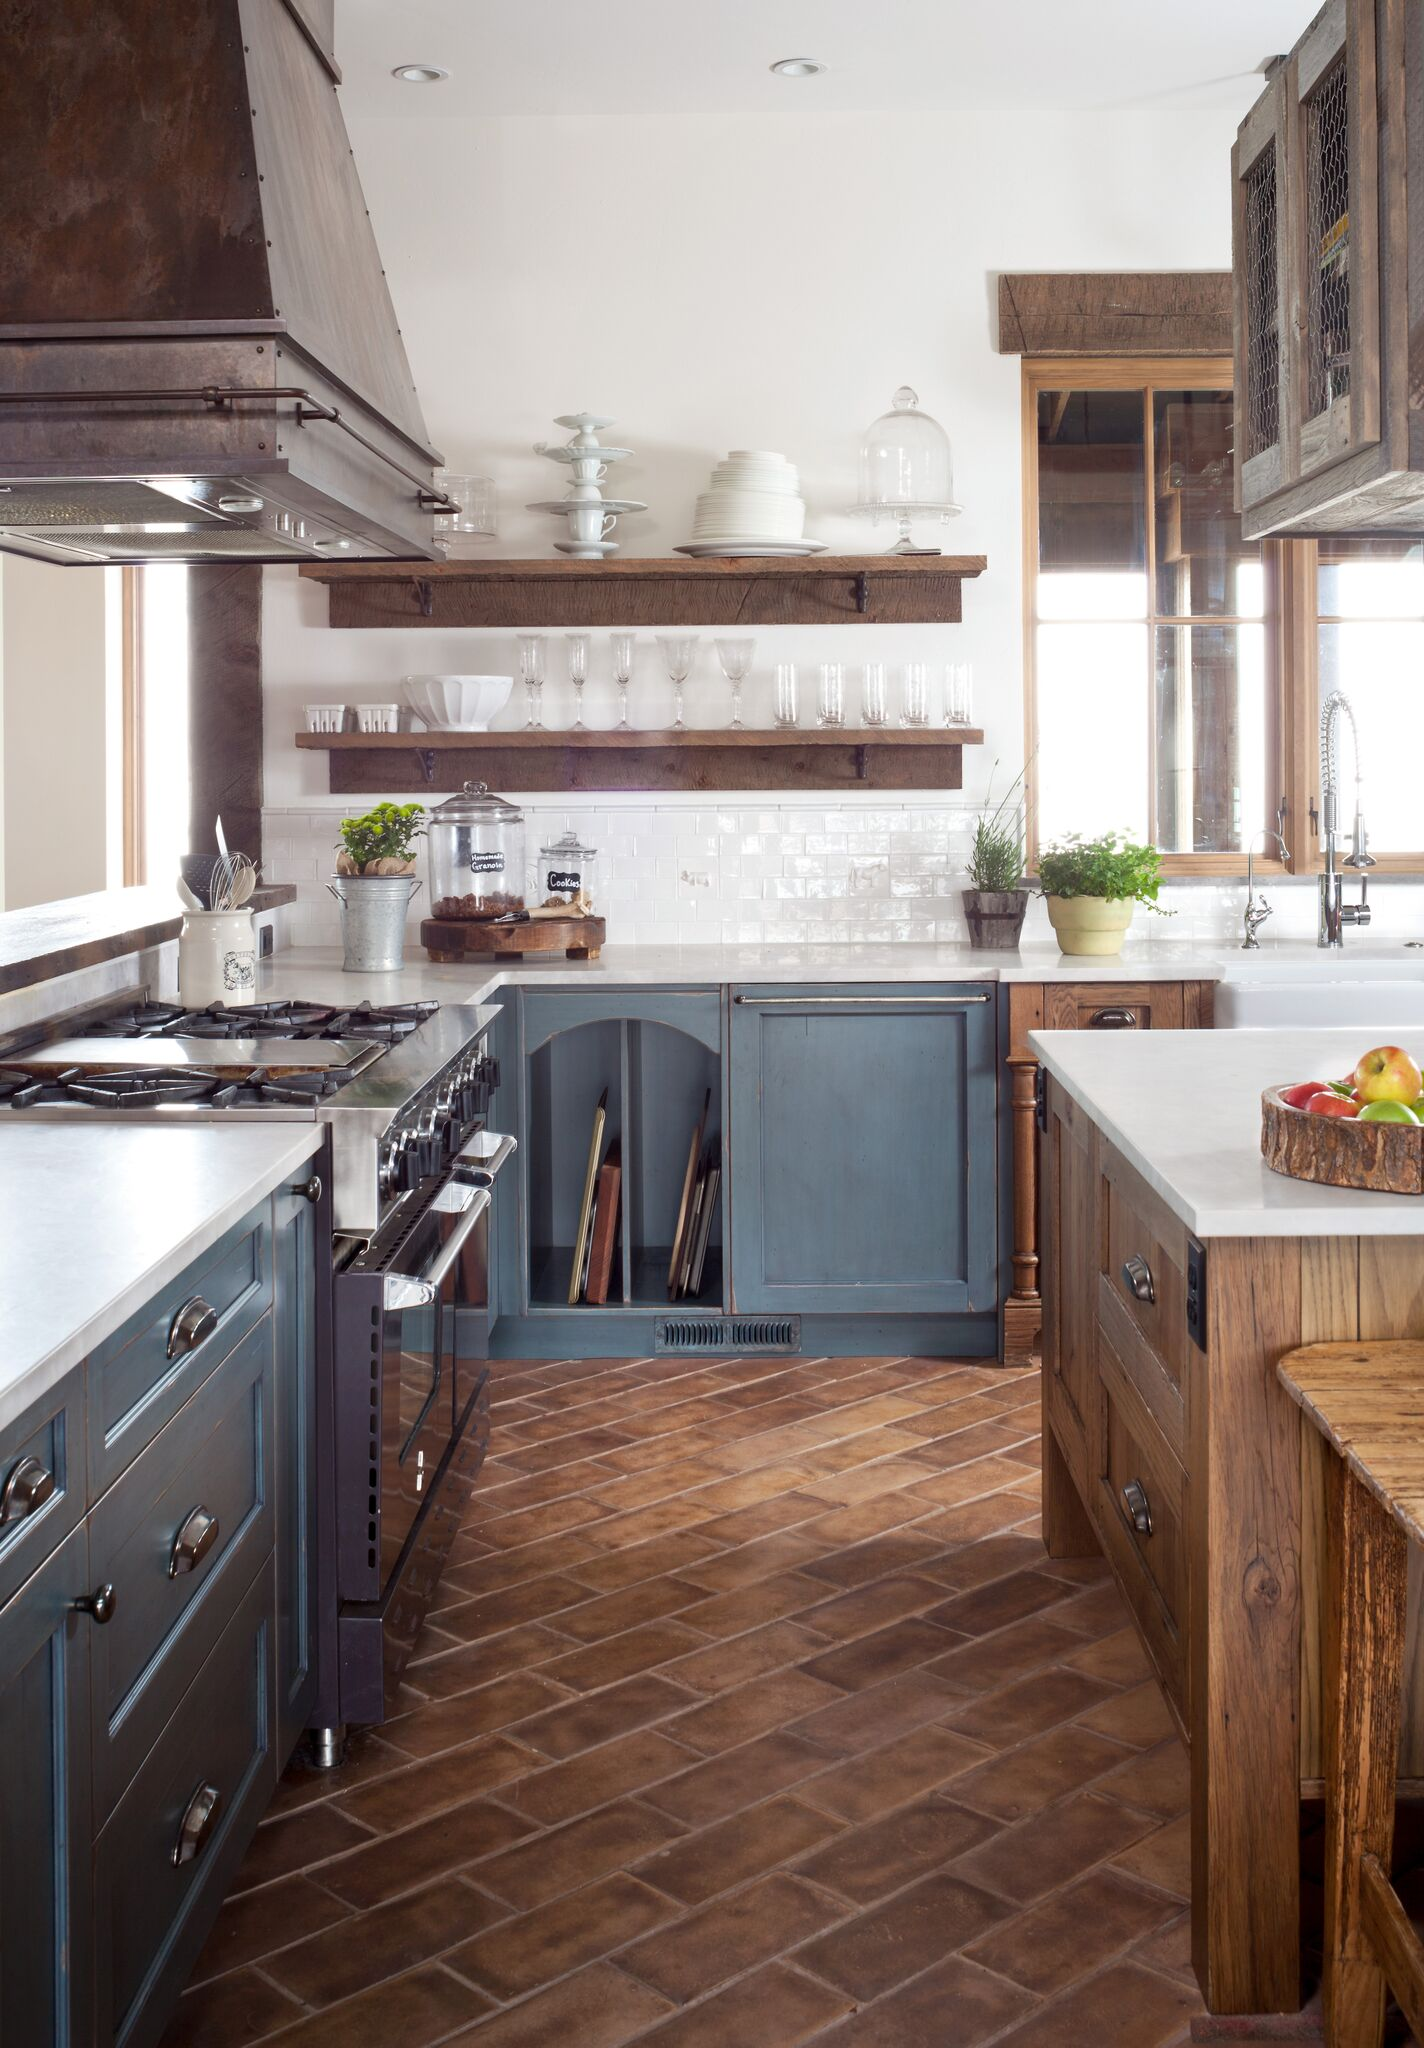 Aspen Rustic Cherry Kitchen Island Creede Range Hood In The Traditional Collection | Raw Urth